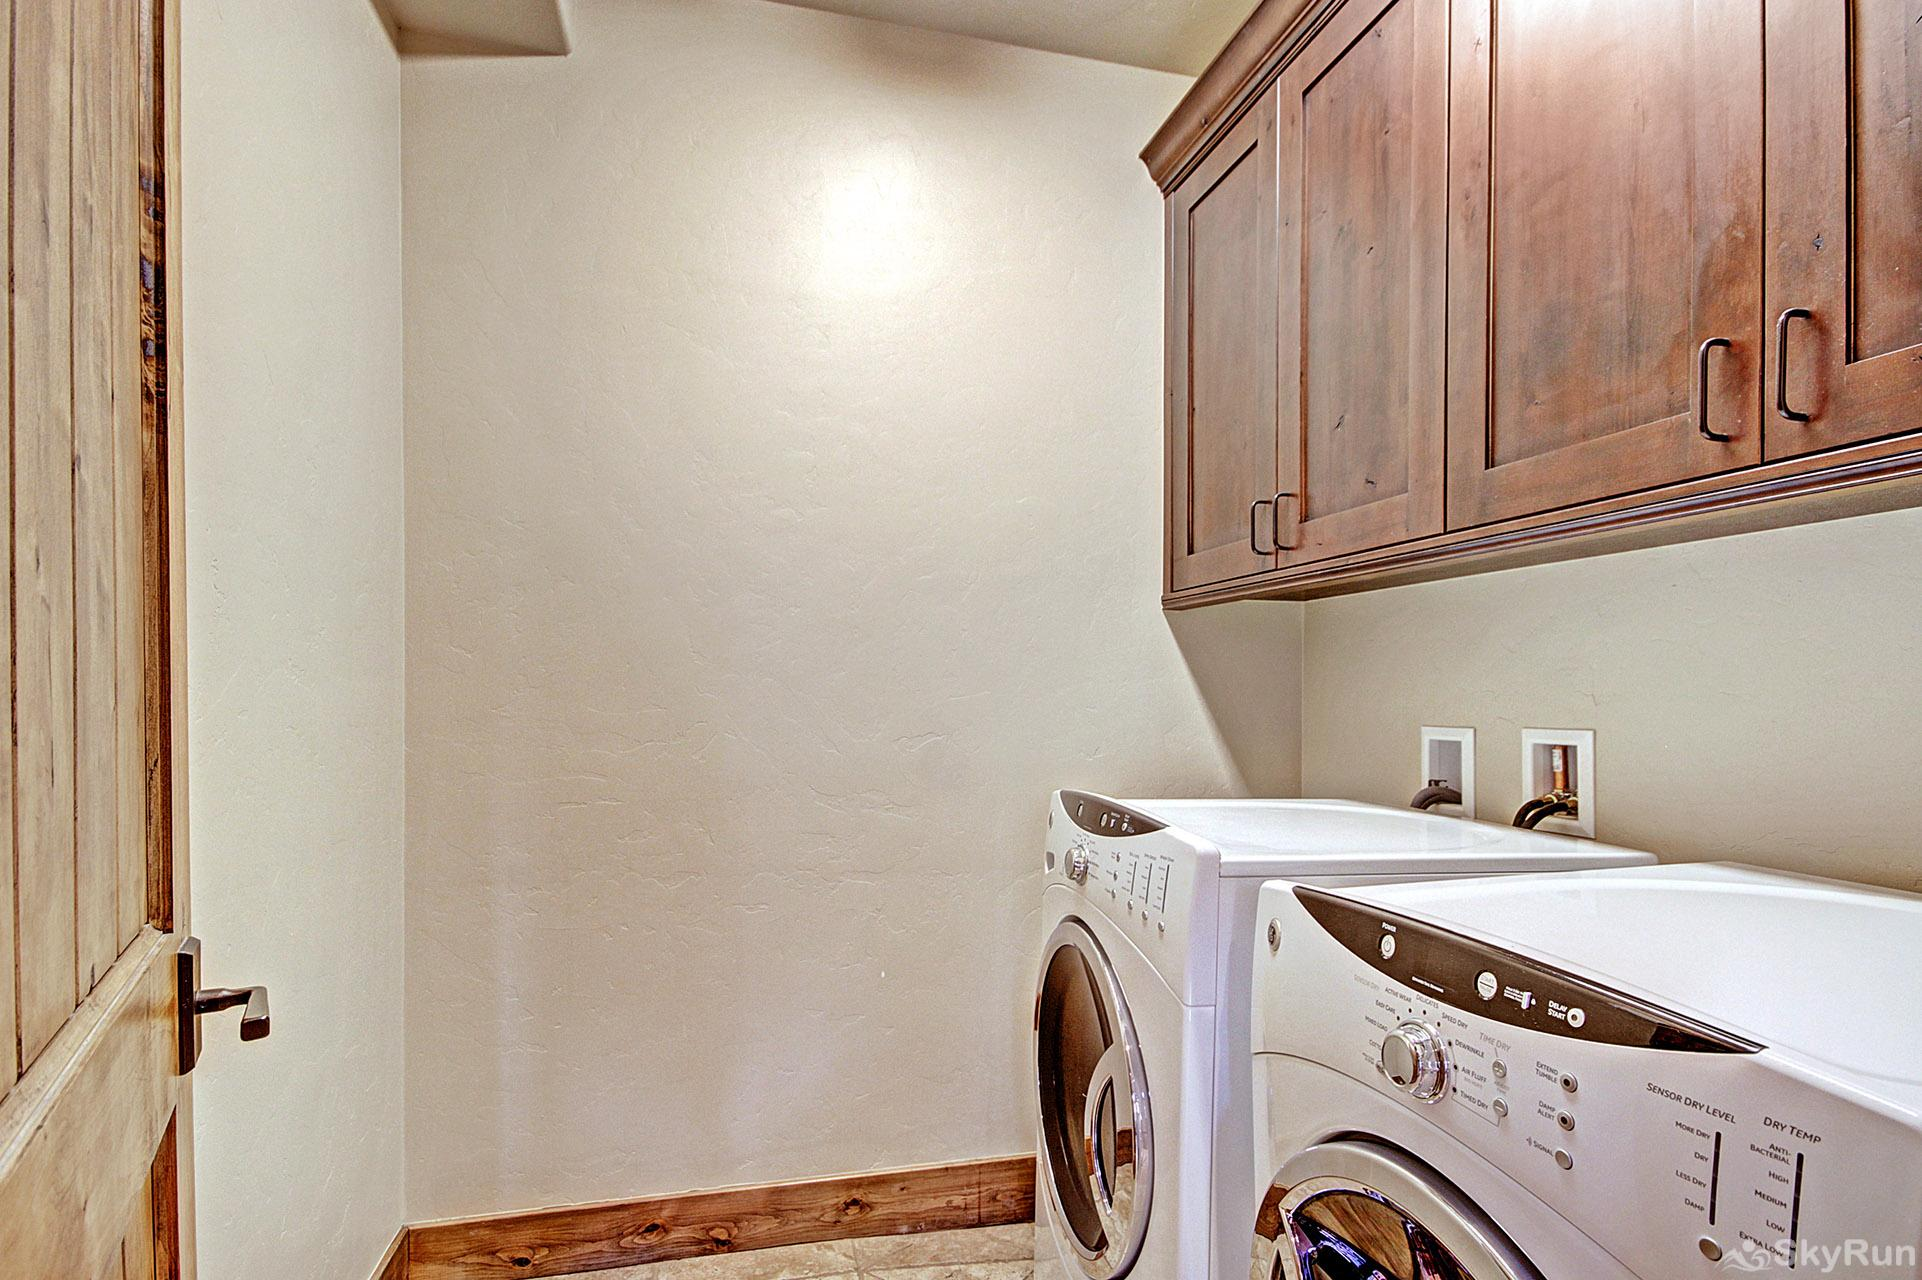 LR962 The Timberline at Lewis Ranch Private Washer and Dryer